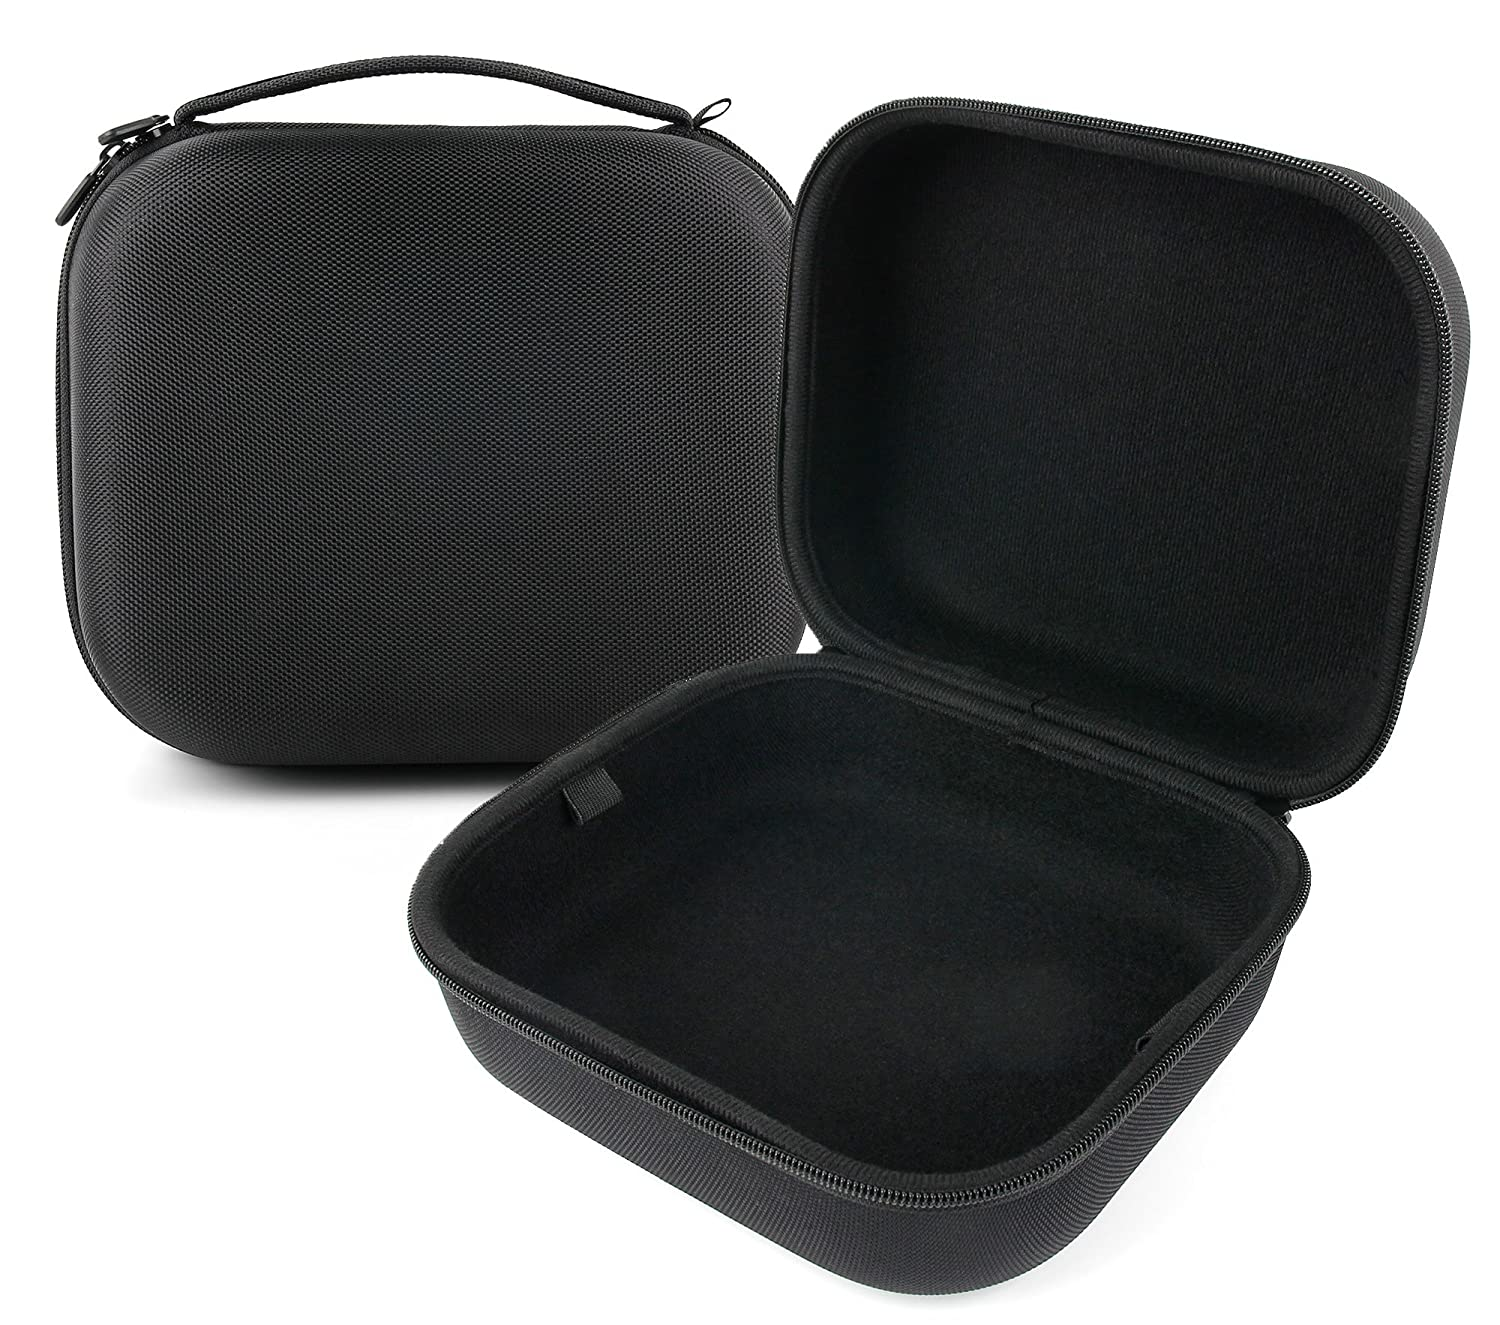 大きなマットブラックTough EVAストレージCarry Case for the Silverline Earmuffs for Children 315357 – by DURAGADGET   B01MUCFCJ2